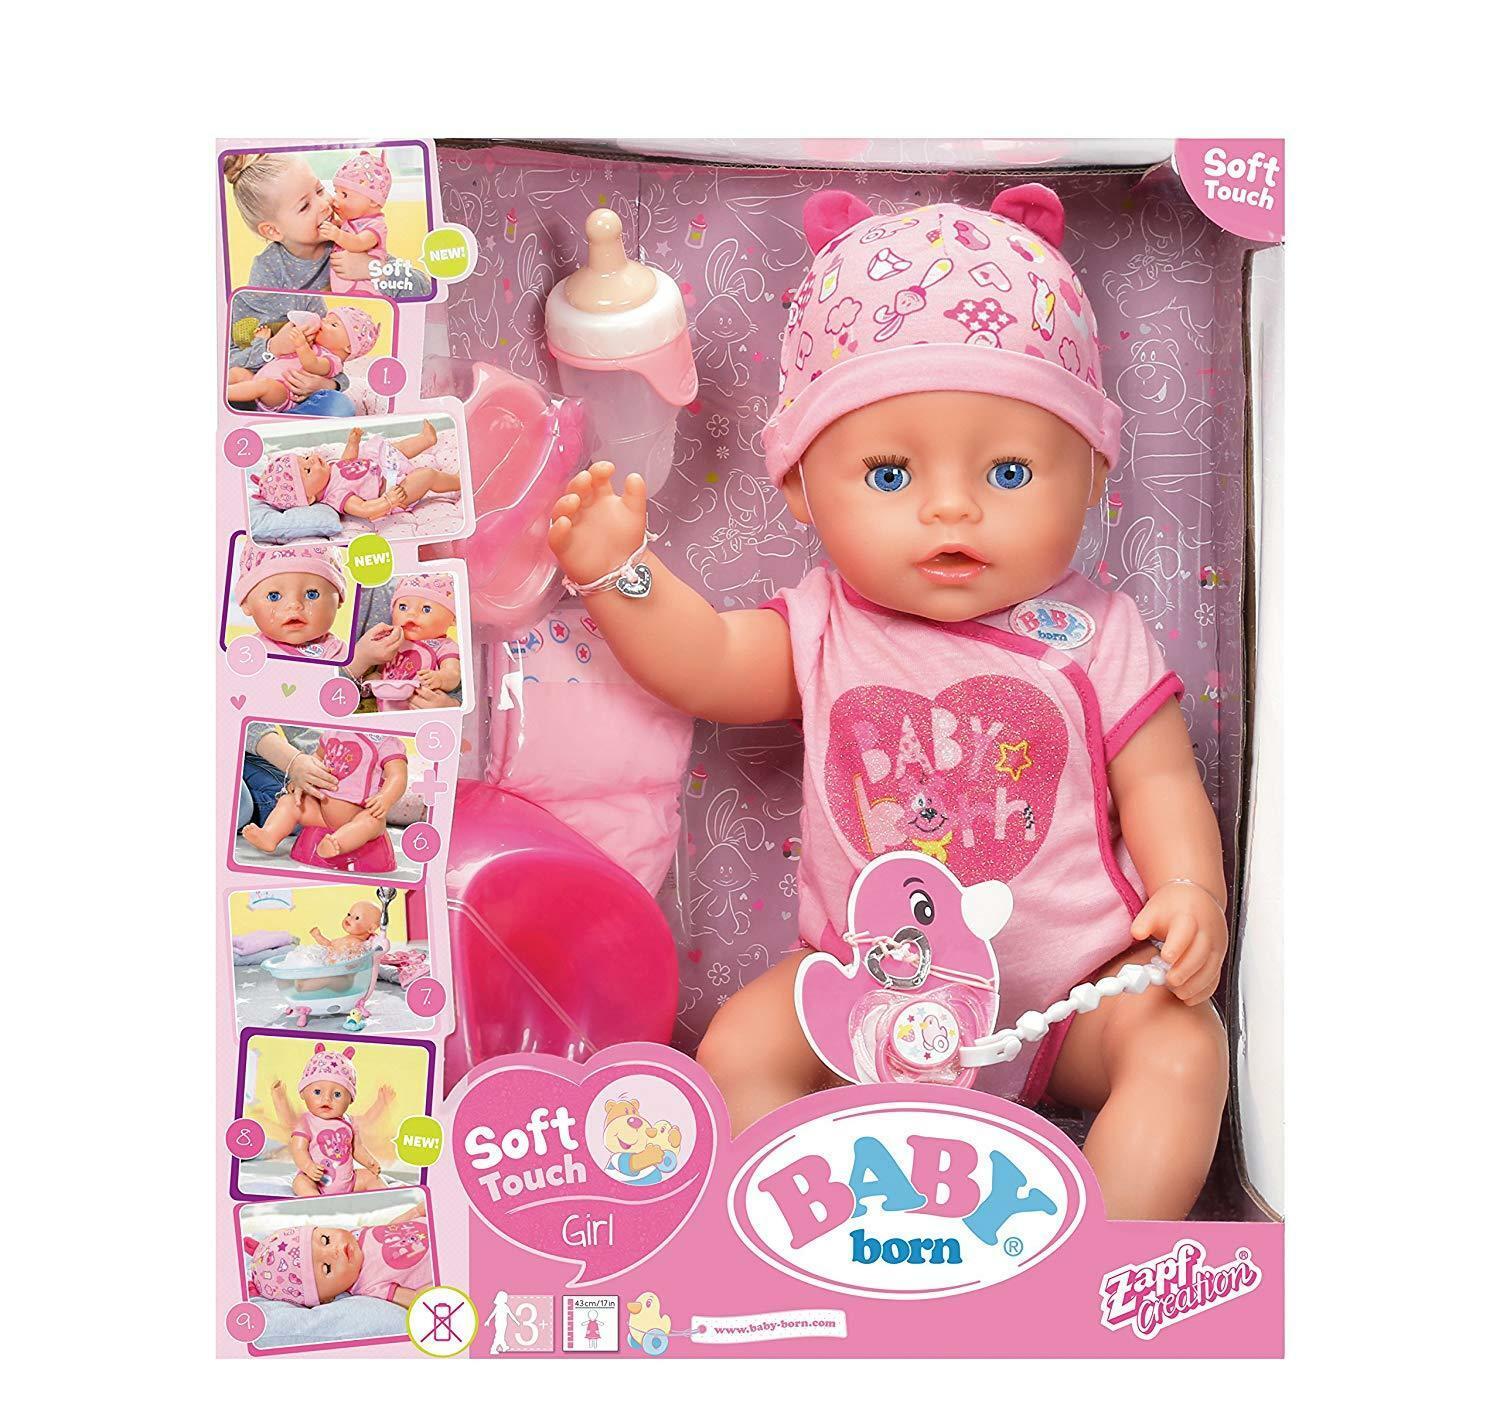 Zapf Baby Soft Born Interactive Soft Baby Touch Doll Toy Playset & Accessories Girl / Boy f63573